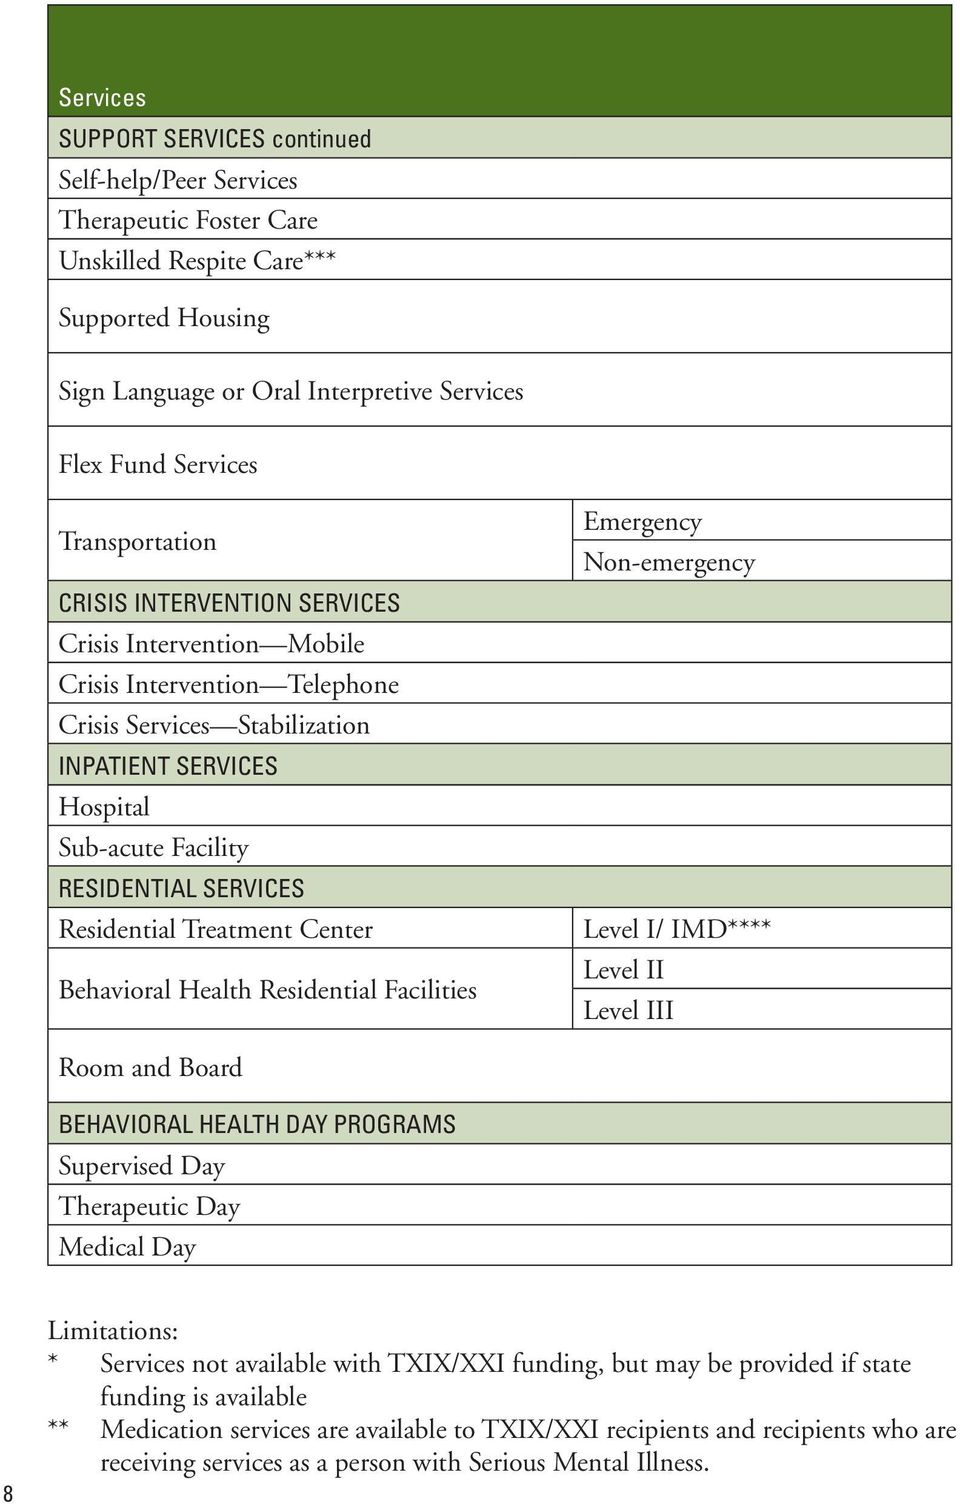 Residential Treatment Center Behavioral Health Residential Facilities Emergency Non-emergency Level I/ IMD**** Level II Level III Room and Board BEHAVIORAL HEALTH DAY PROGRAMS Supervised Day